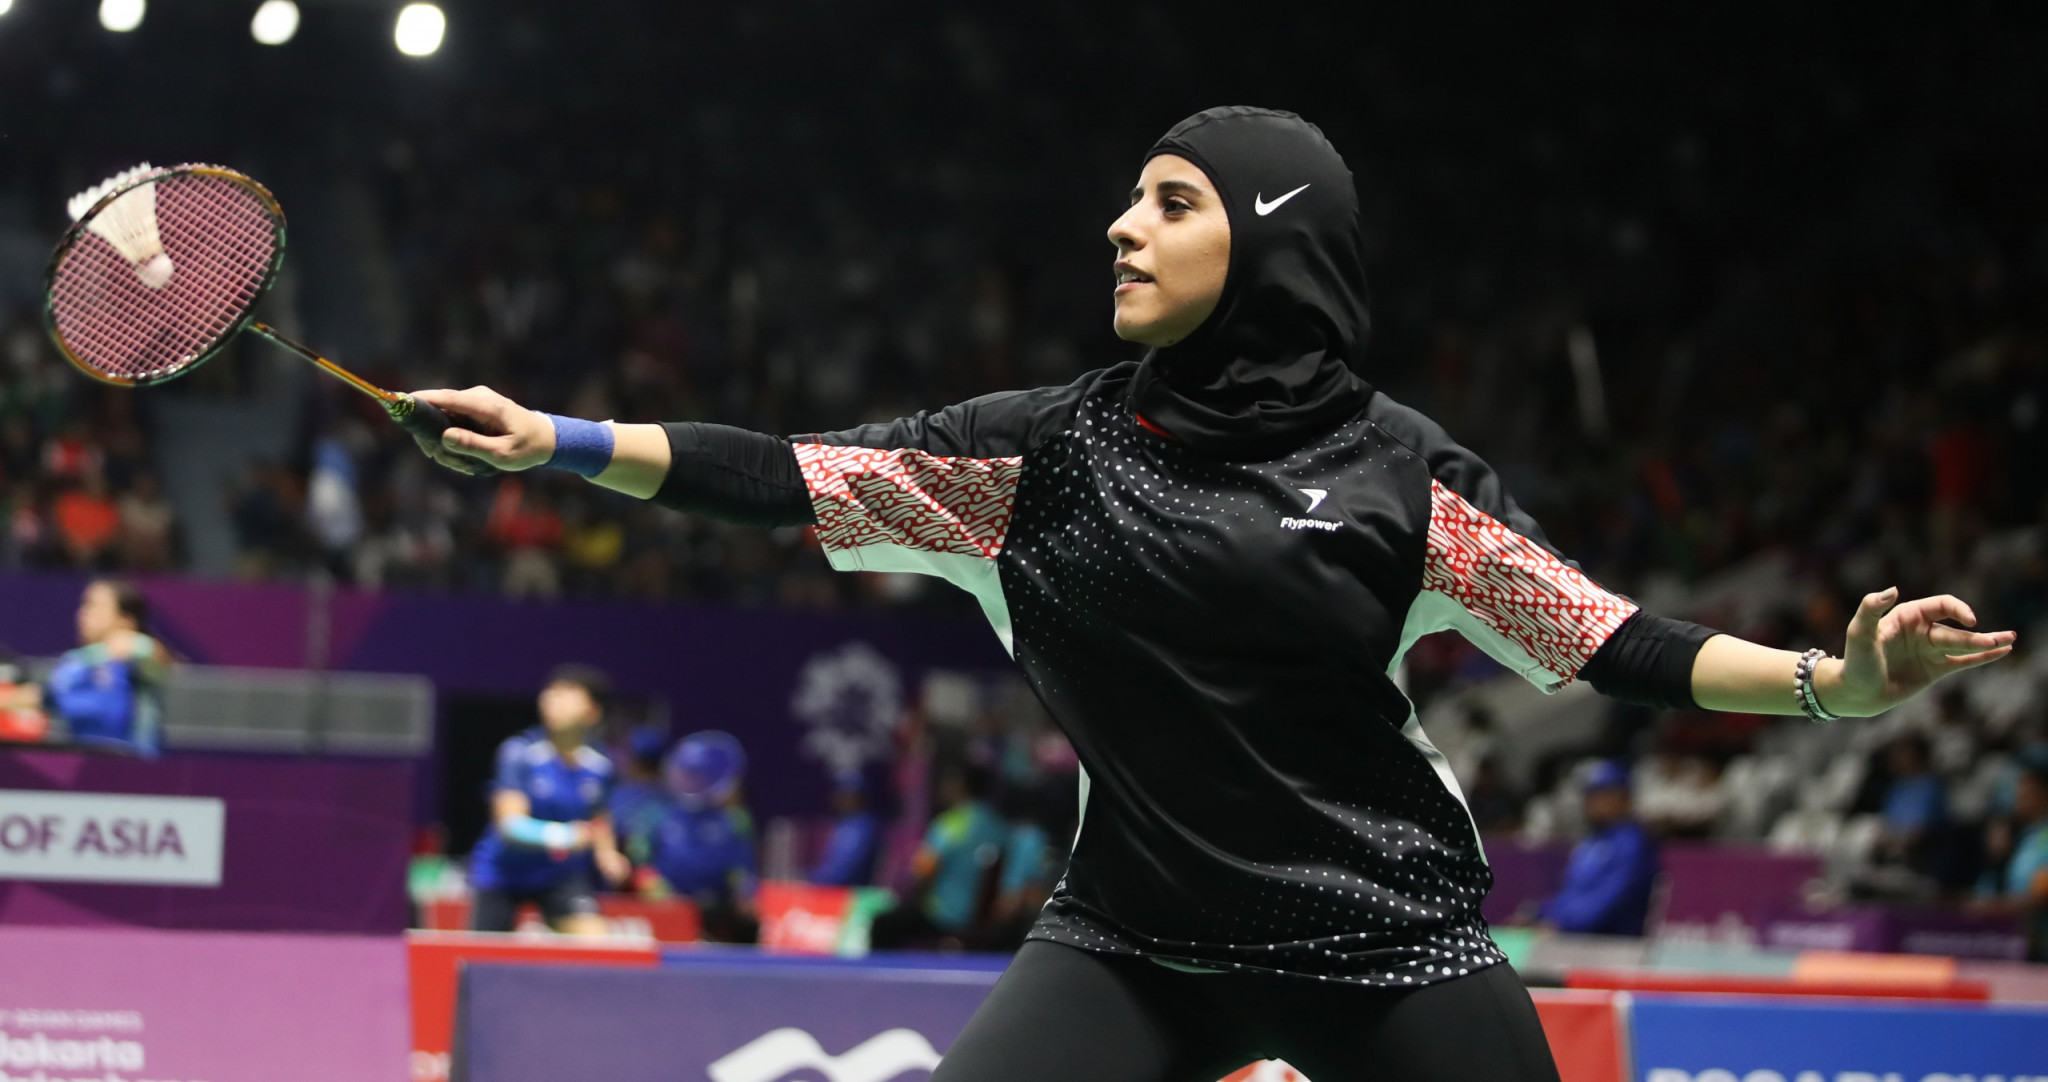 Arab Badminton Federation's online initiatives during pandemic surpass expectations